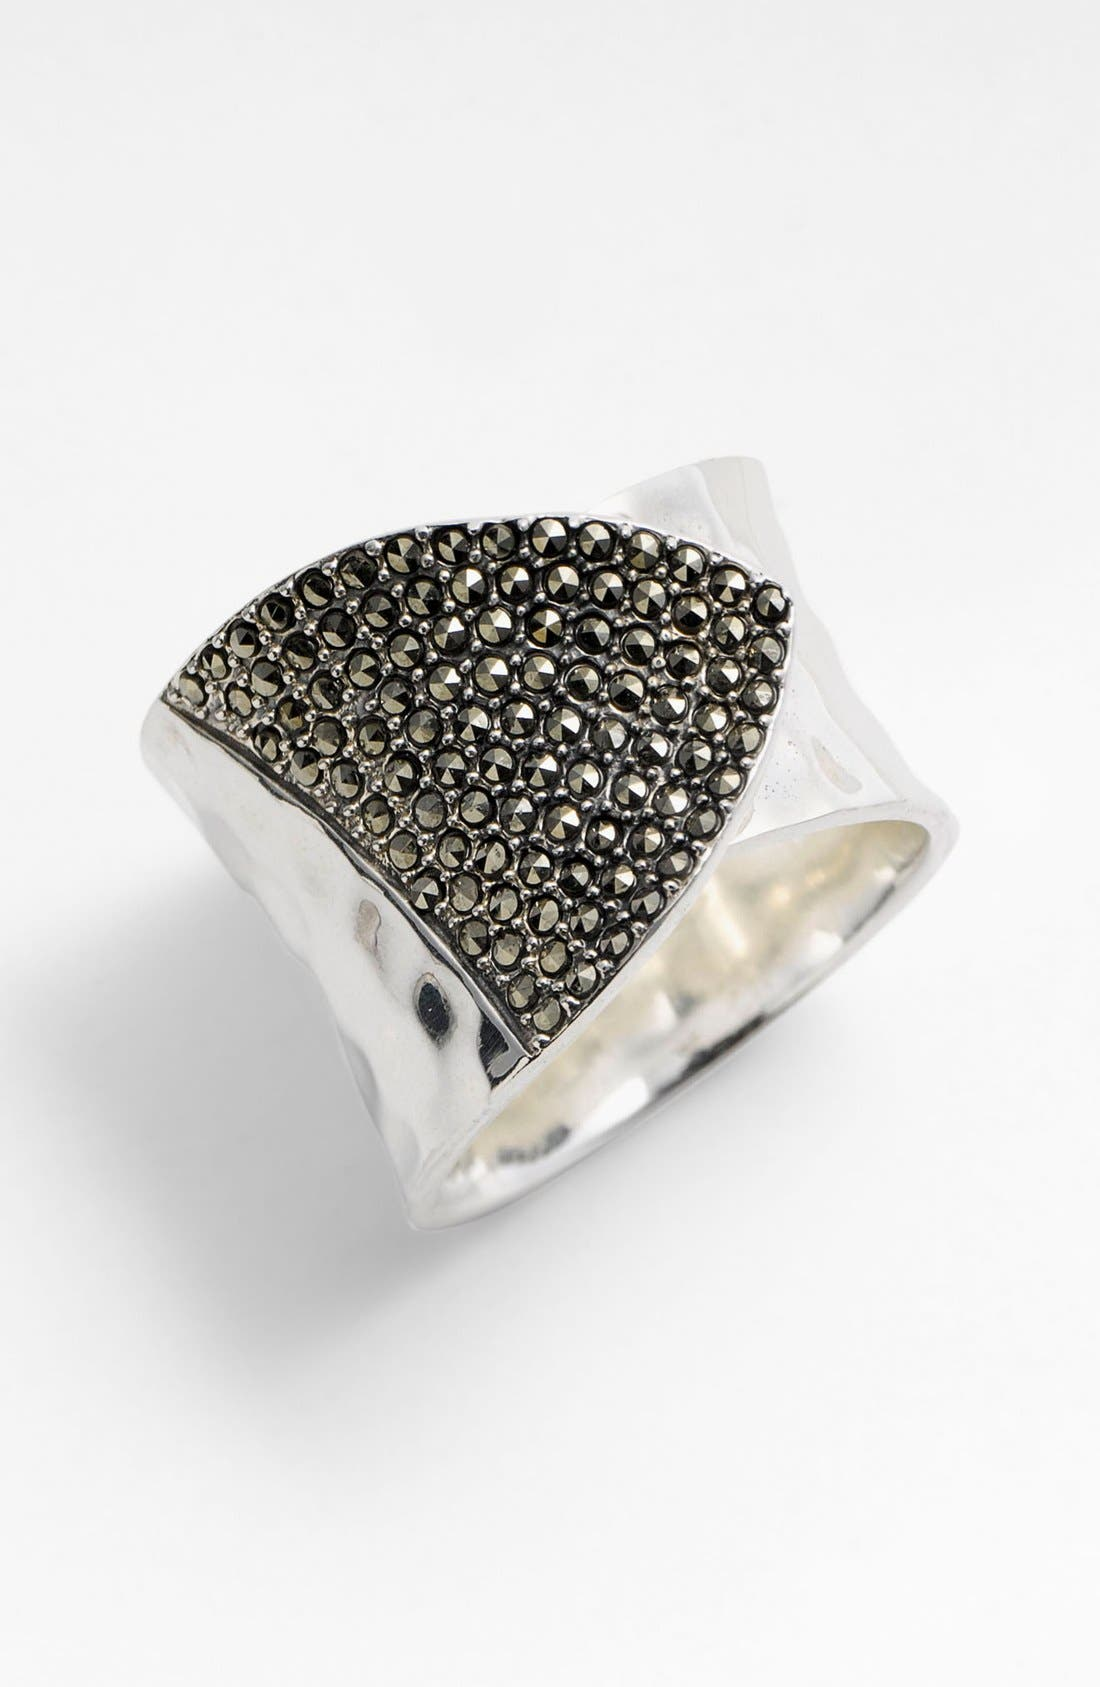 Alternate Image 1 Selected - Judith Jack 'Silver Rain' Wrap Cocktail Ring (Nordstrom Exclusive)